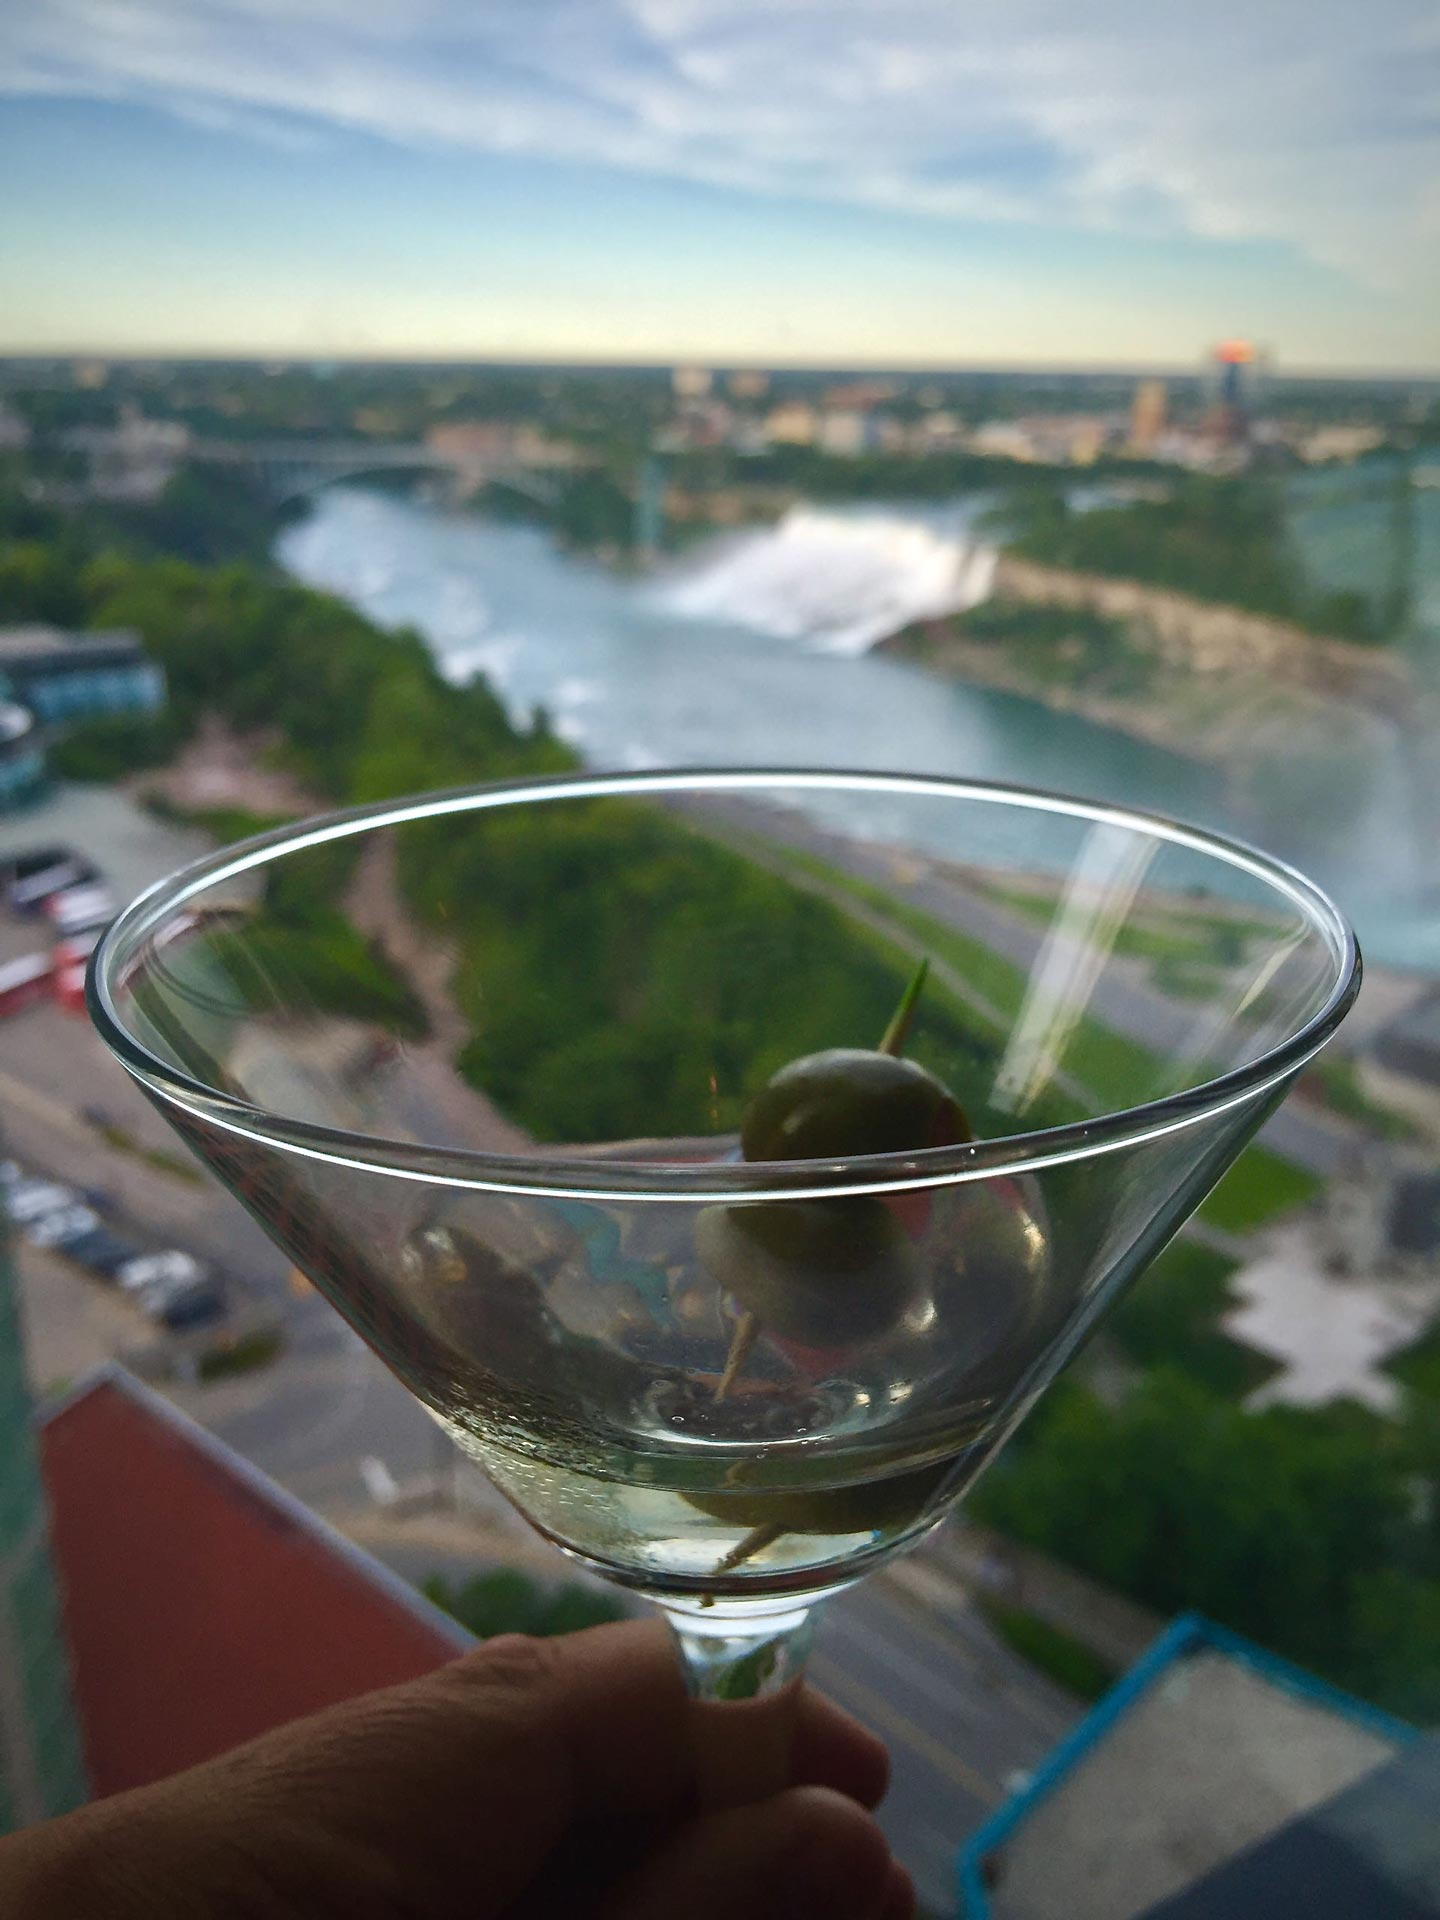 where to stay in niagara falls with dining options